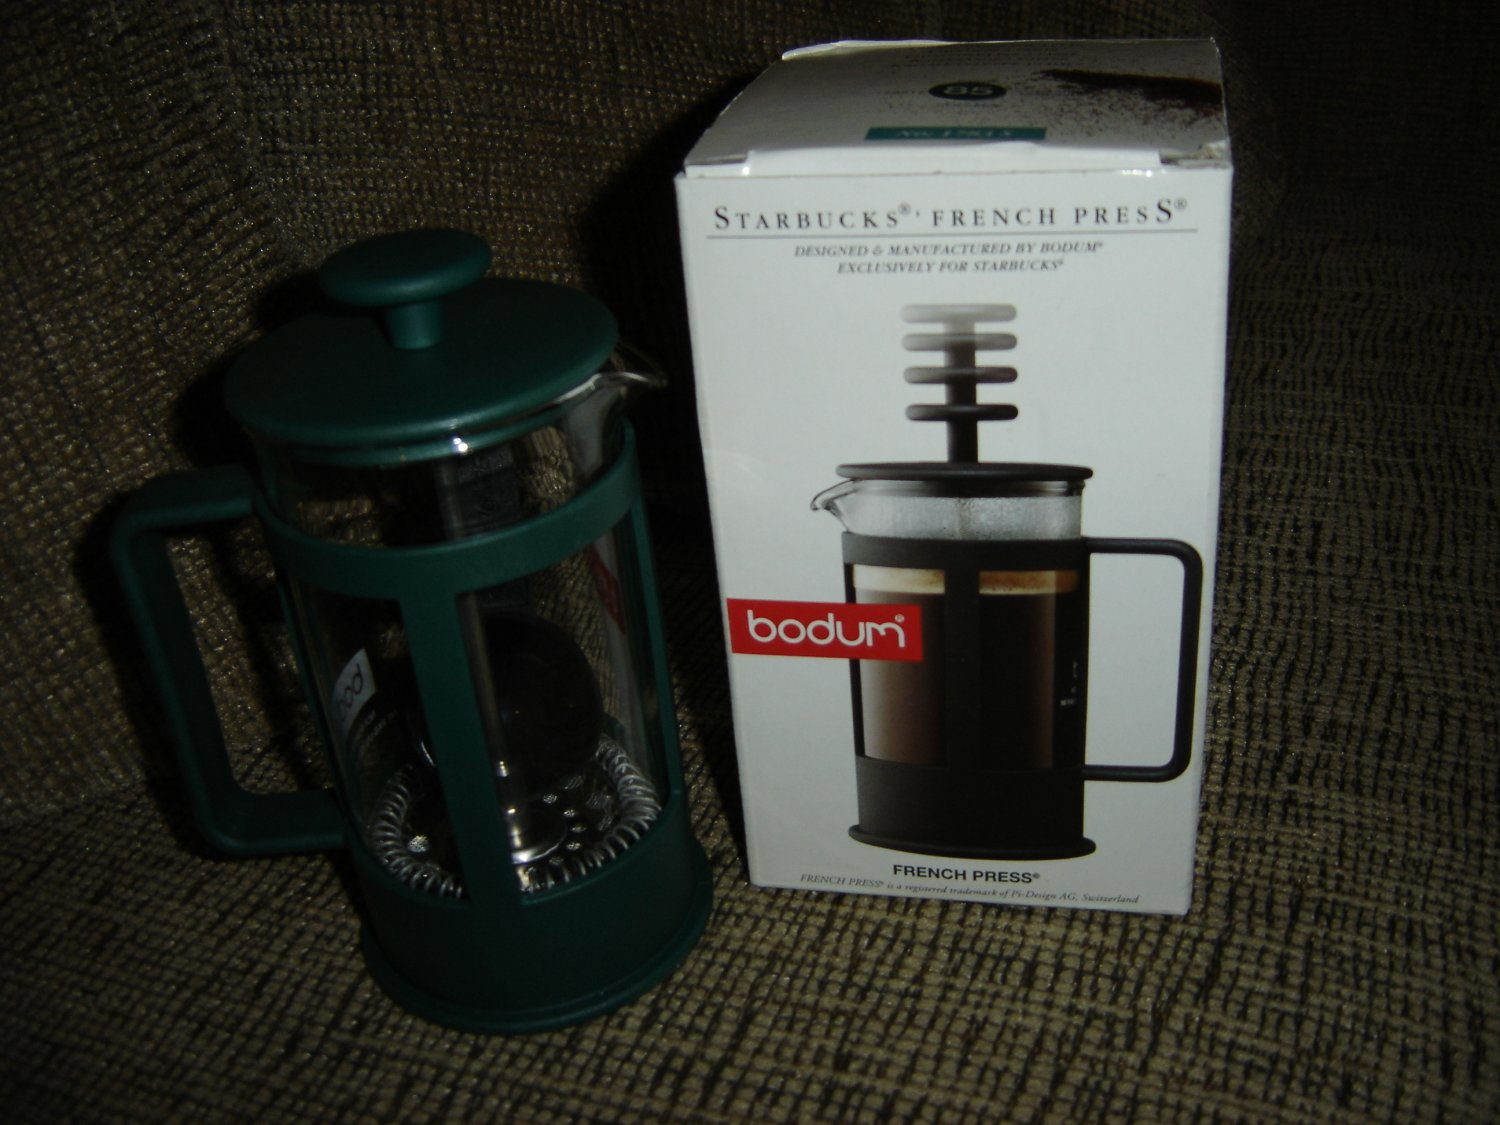 Starbucks bodum 3 cup no 1783 s french press coffee maker - Starbucks bodum french press ...